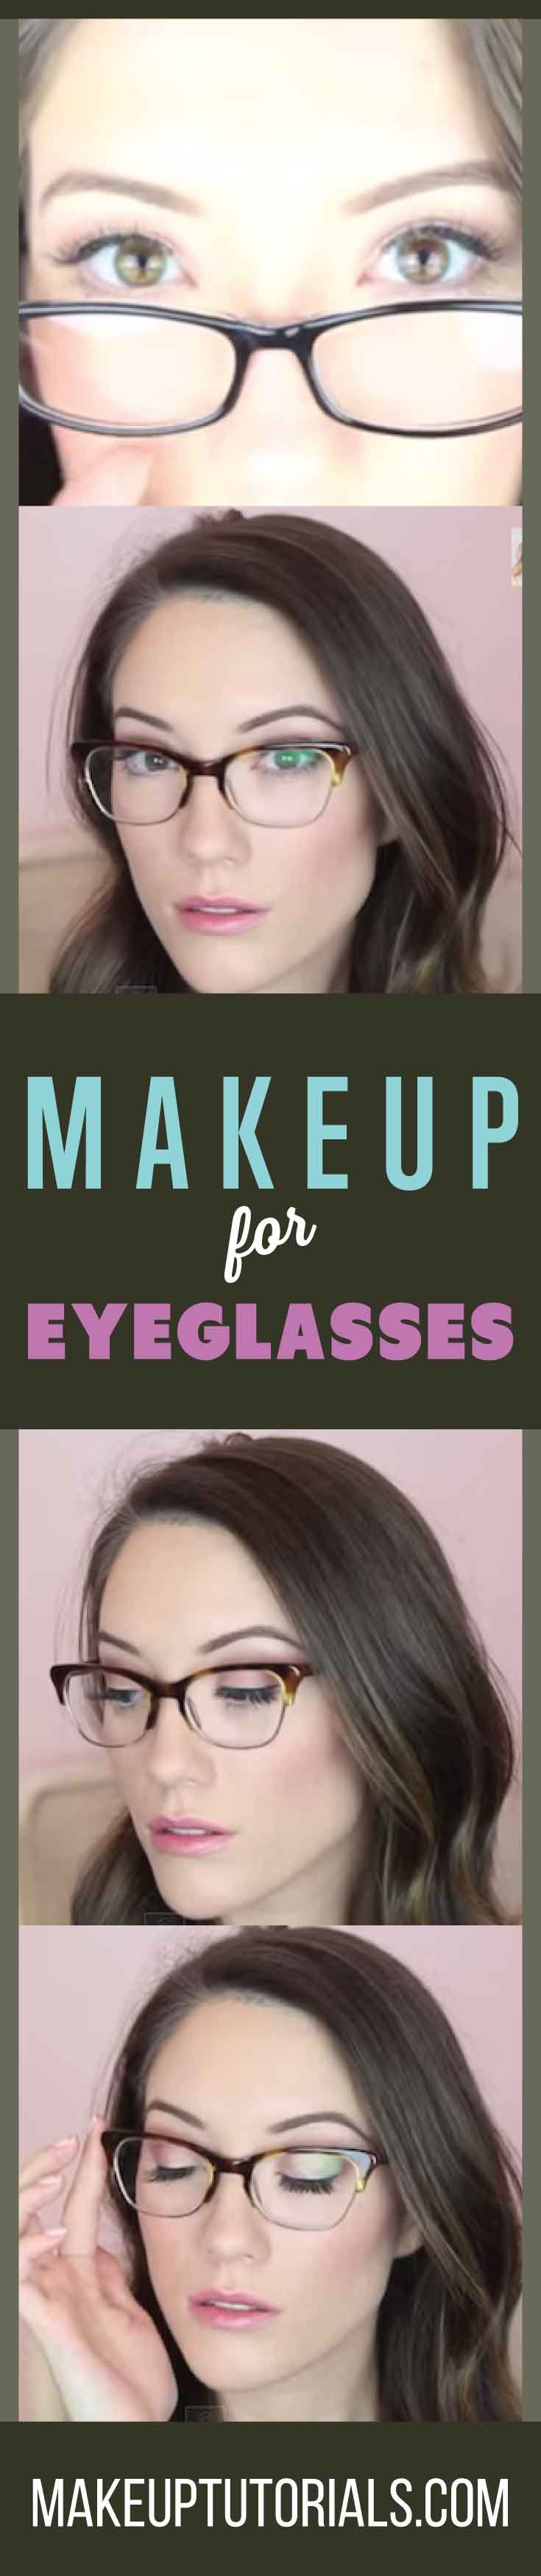 How To Do Makeup For Eyeglasses | East Makeup Tutorials For Glasses Wearing Gals By Makeup Tutorials.